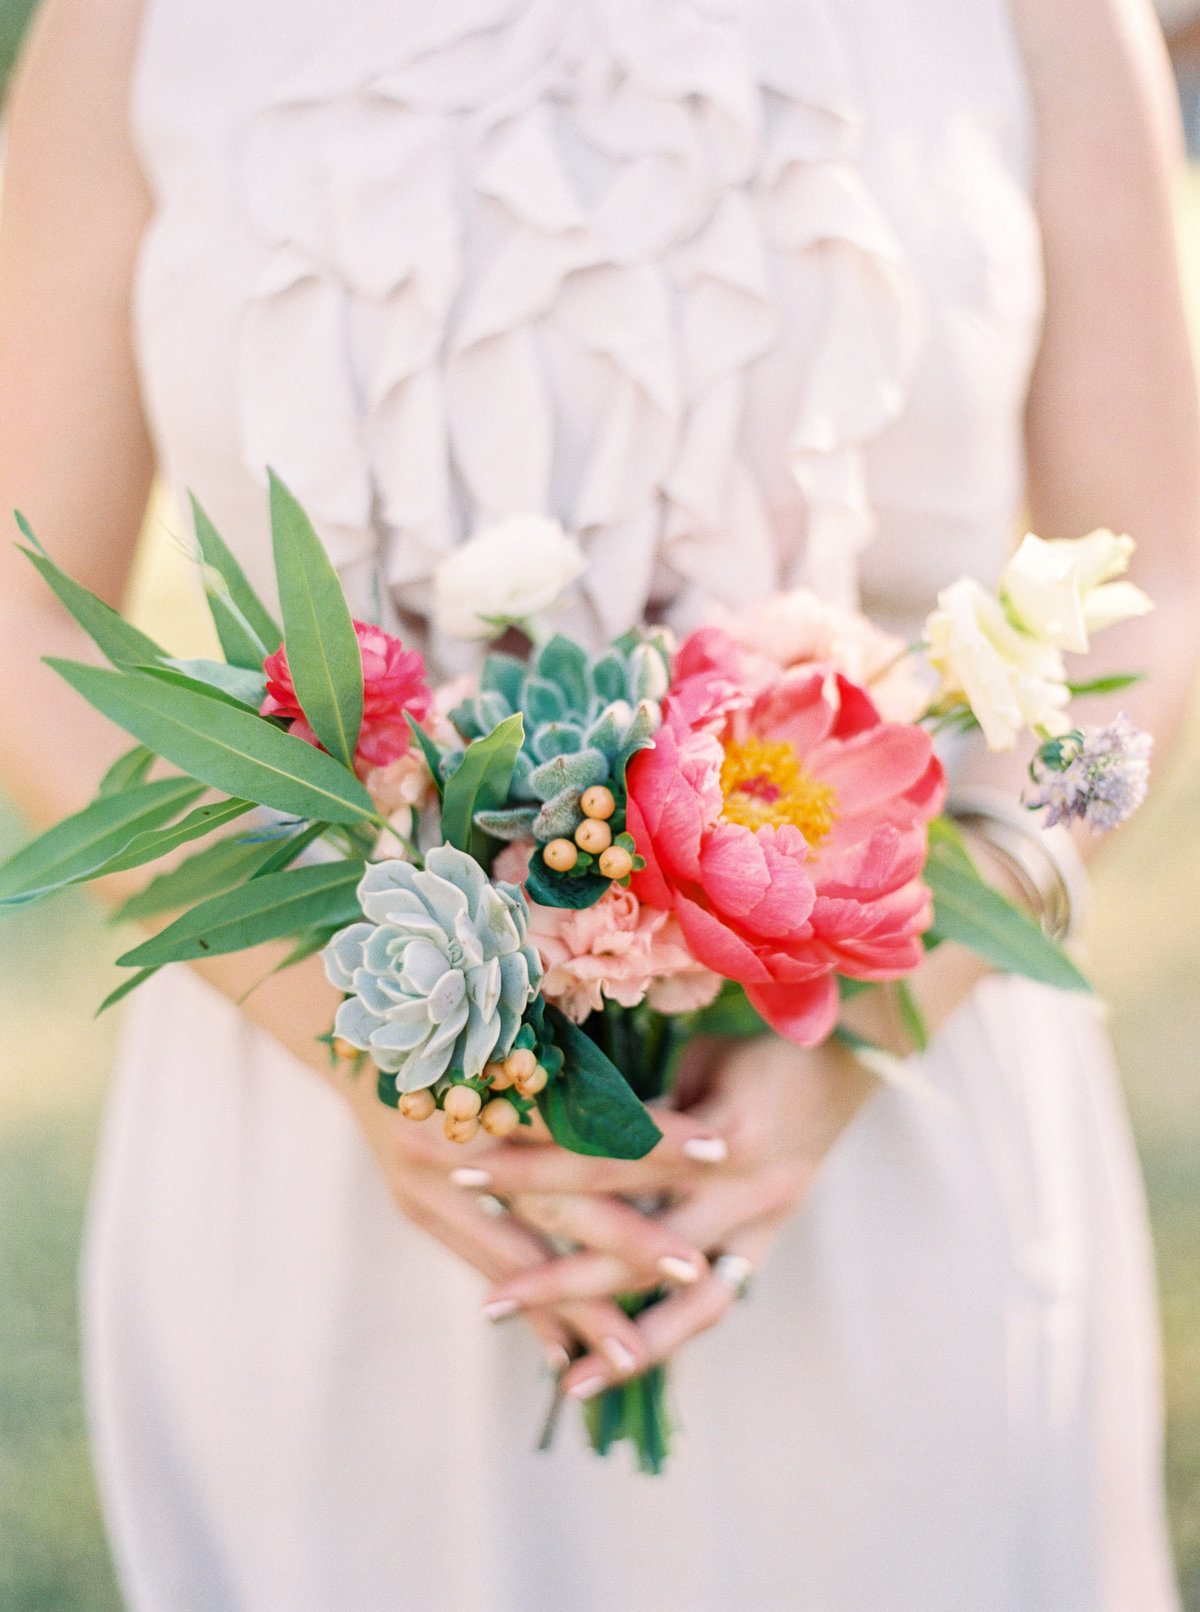 Imoni-Events-Melissa-Jill-Saguaro-Lake-Ranch-051